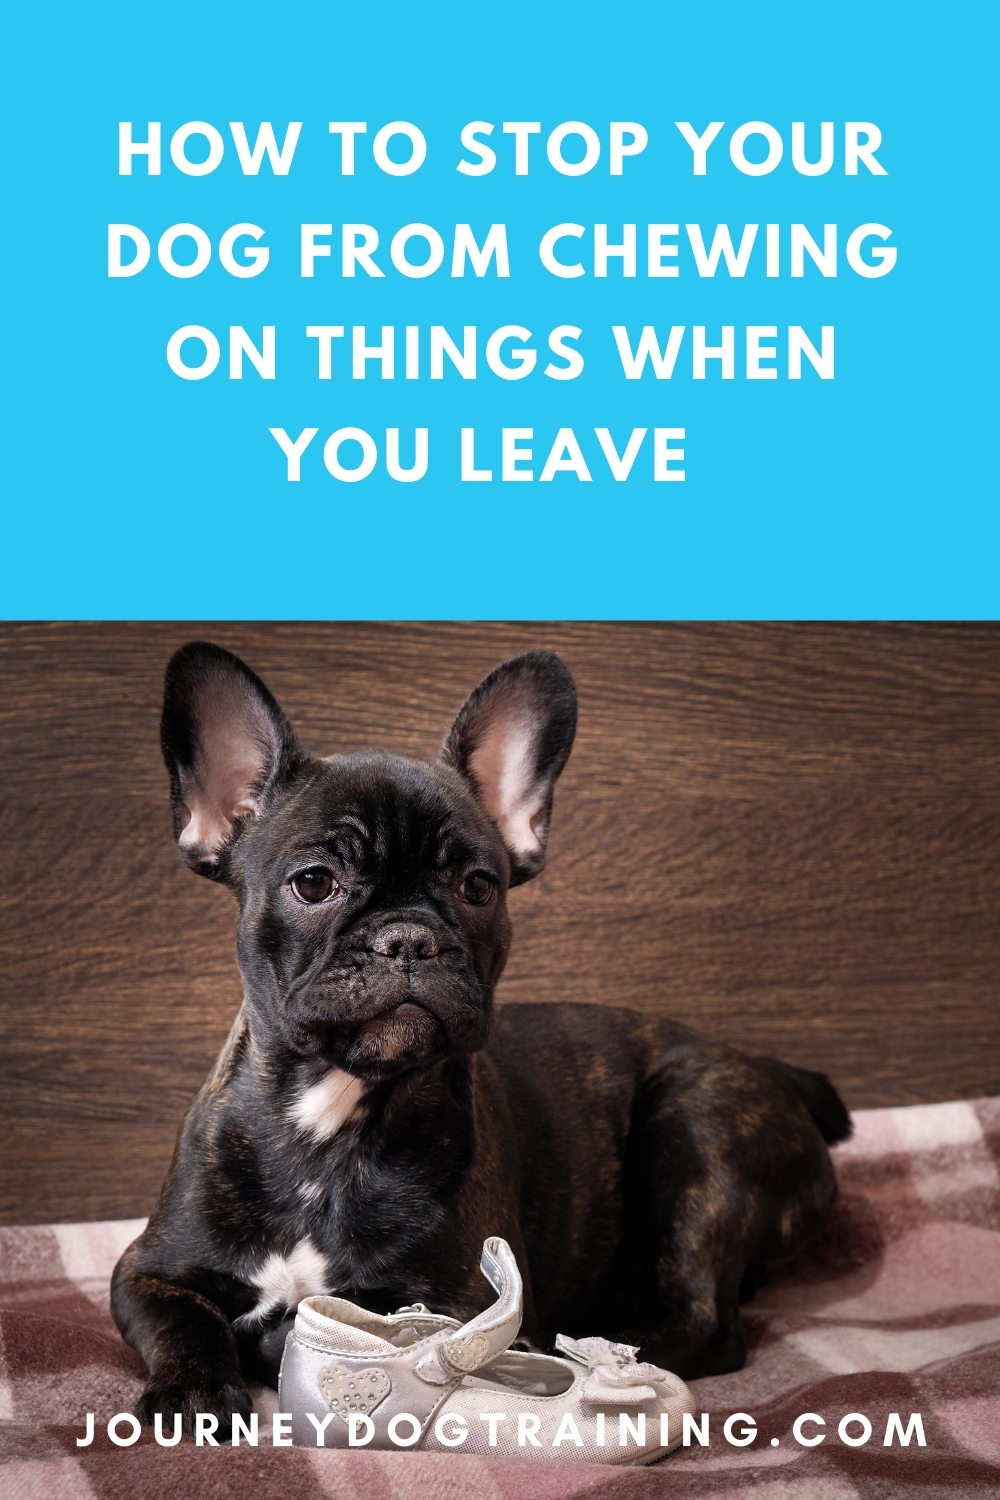 How to stop your dog from chewing on things when you leave the house | journeydogtraining.com